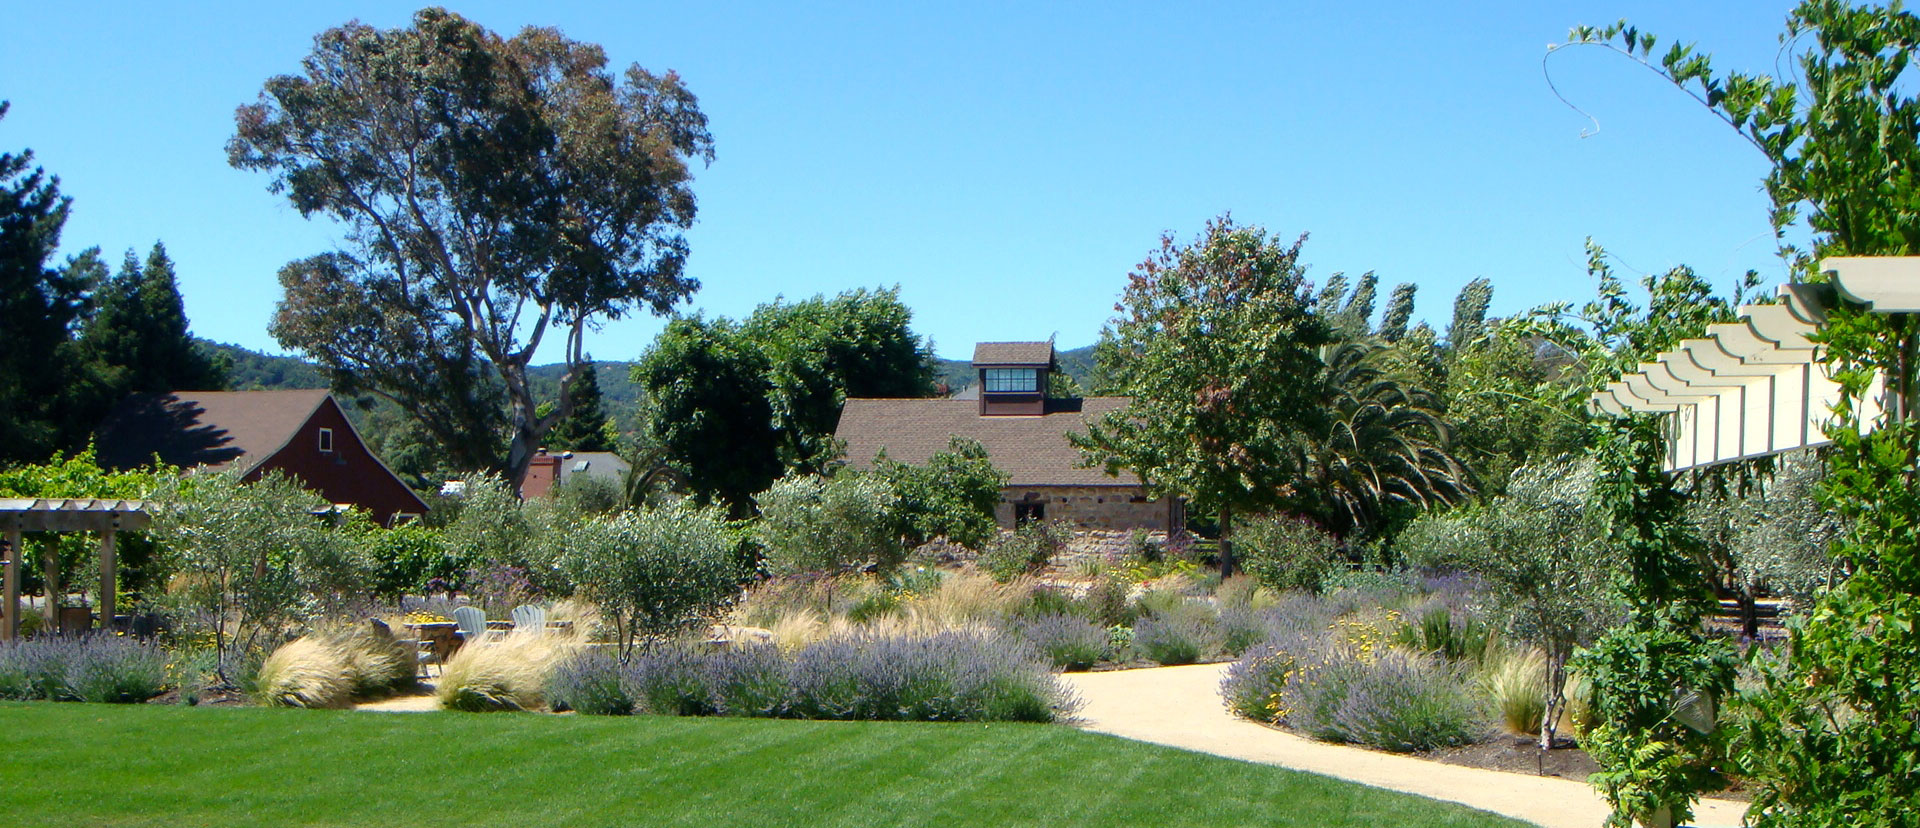 Stone Barn Farm, Sonoma, California